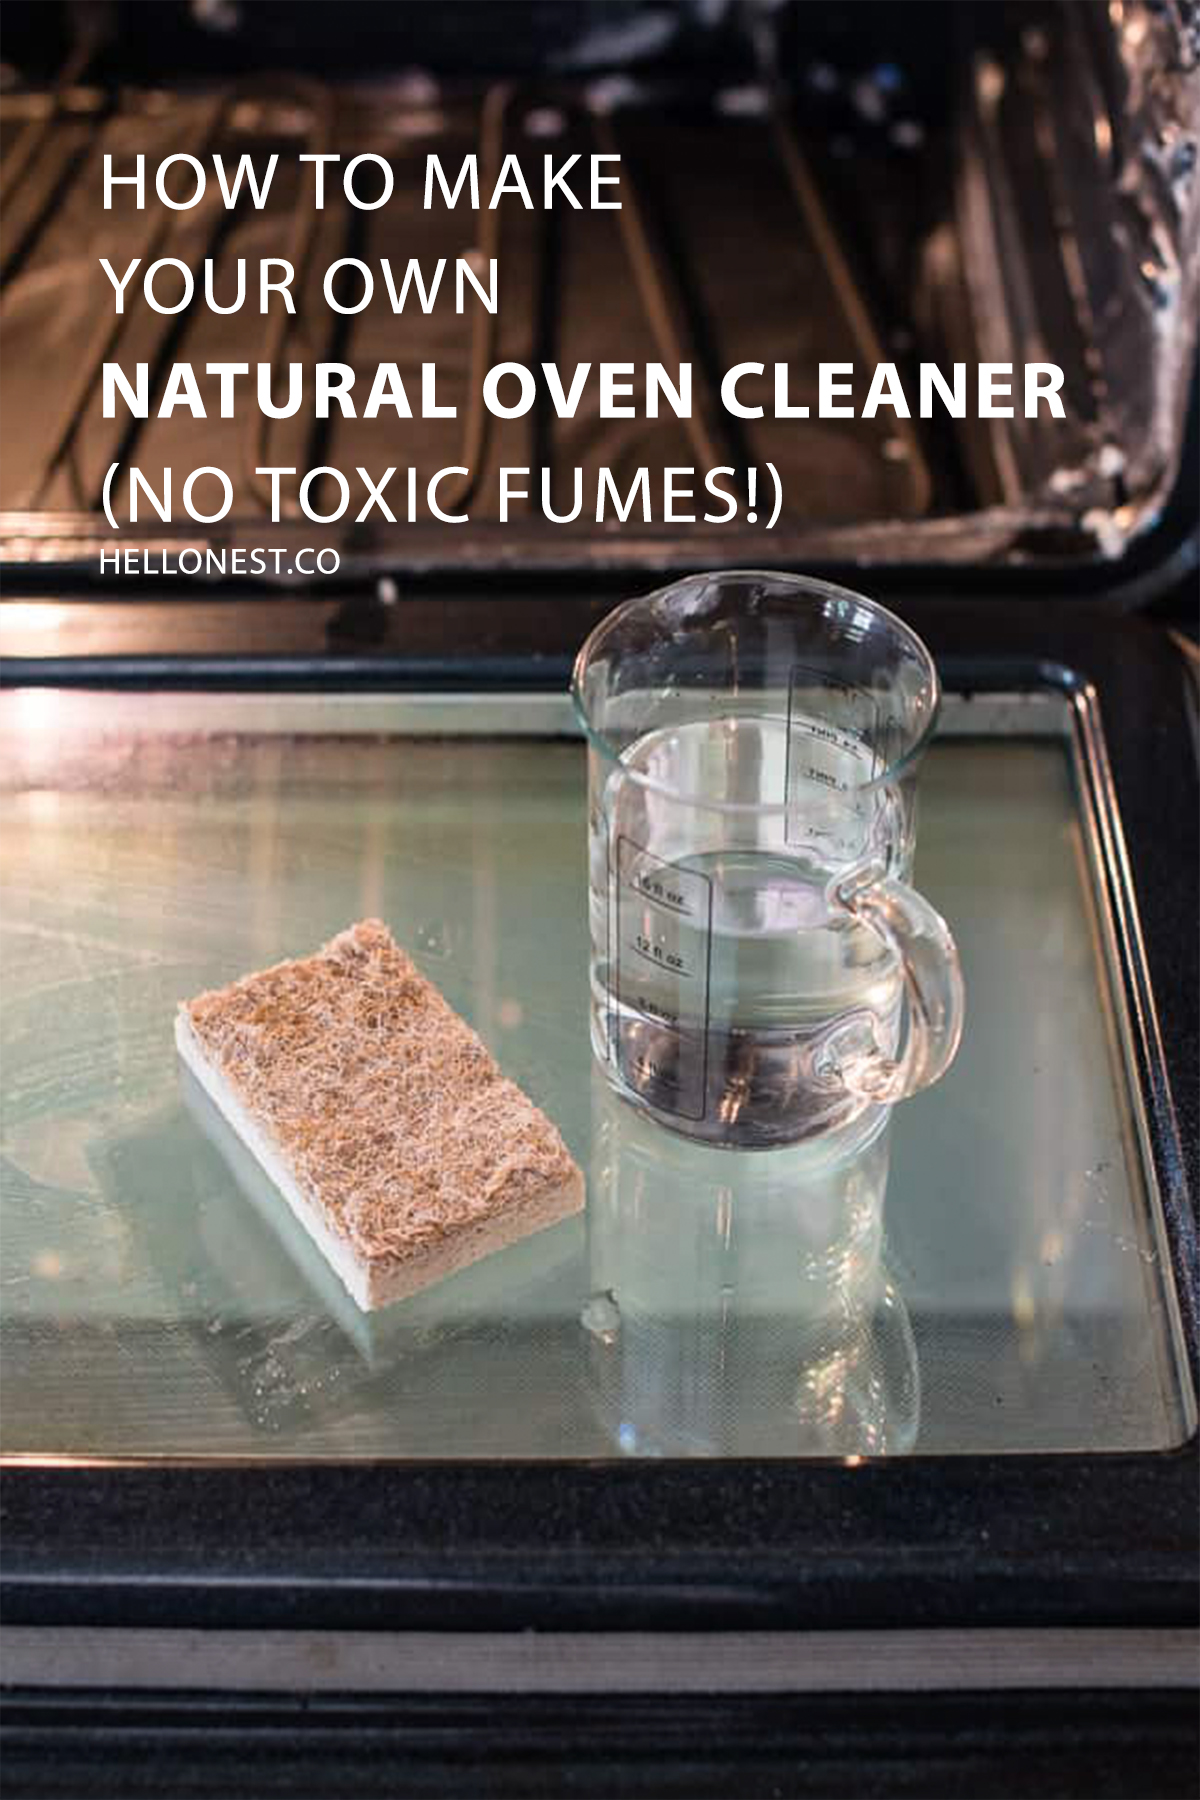 How To Make Your Own Natural Oven Cleaner (No Toxic Fumes!)